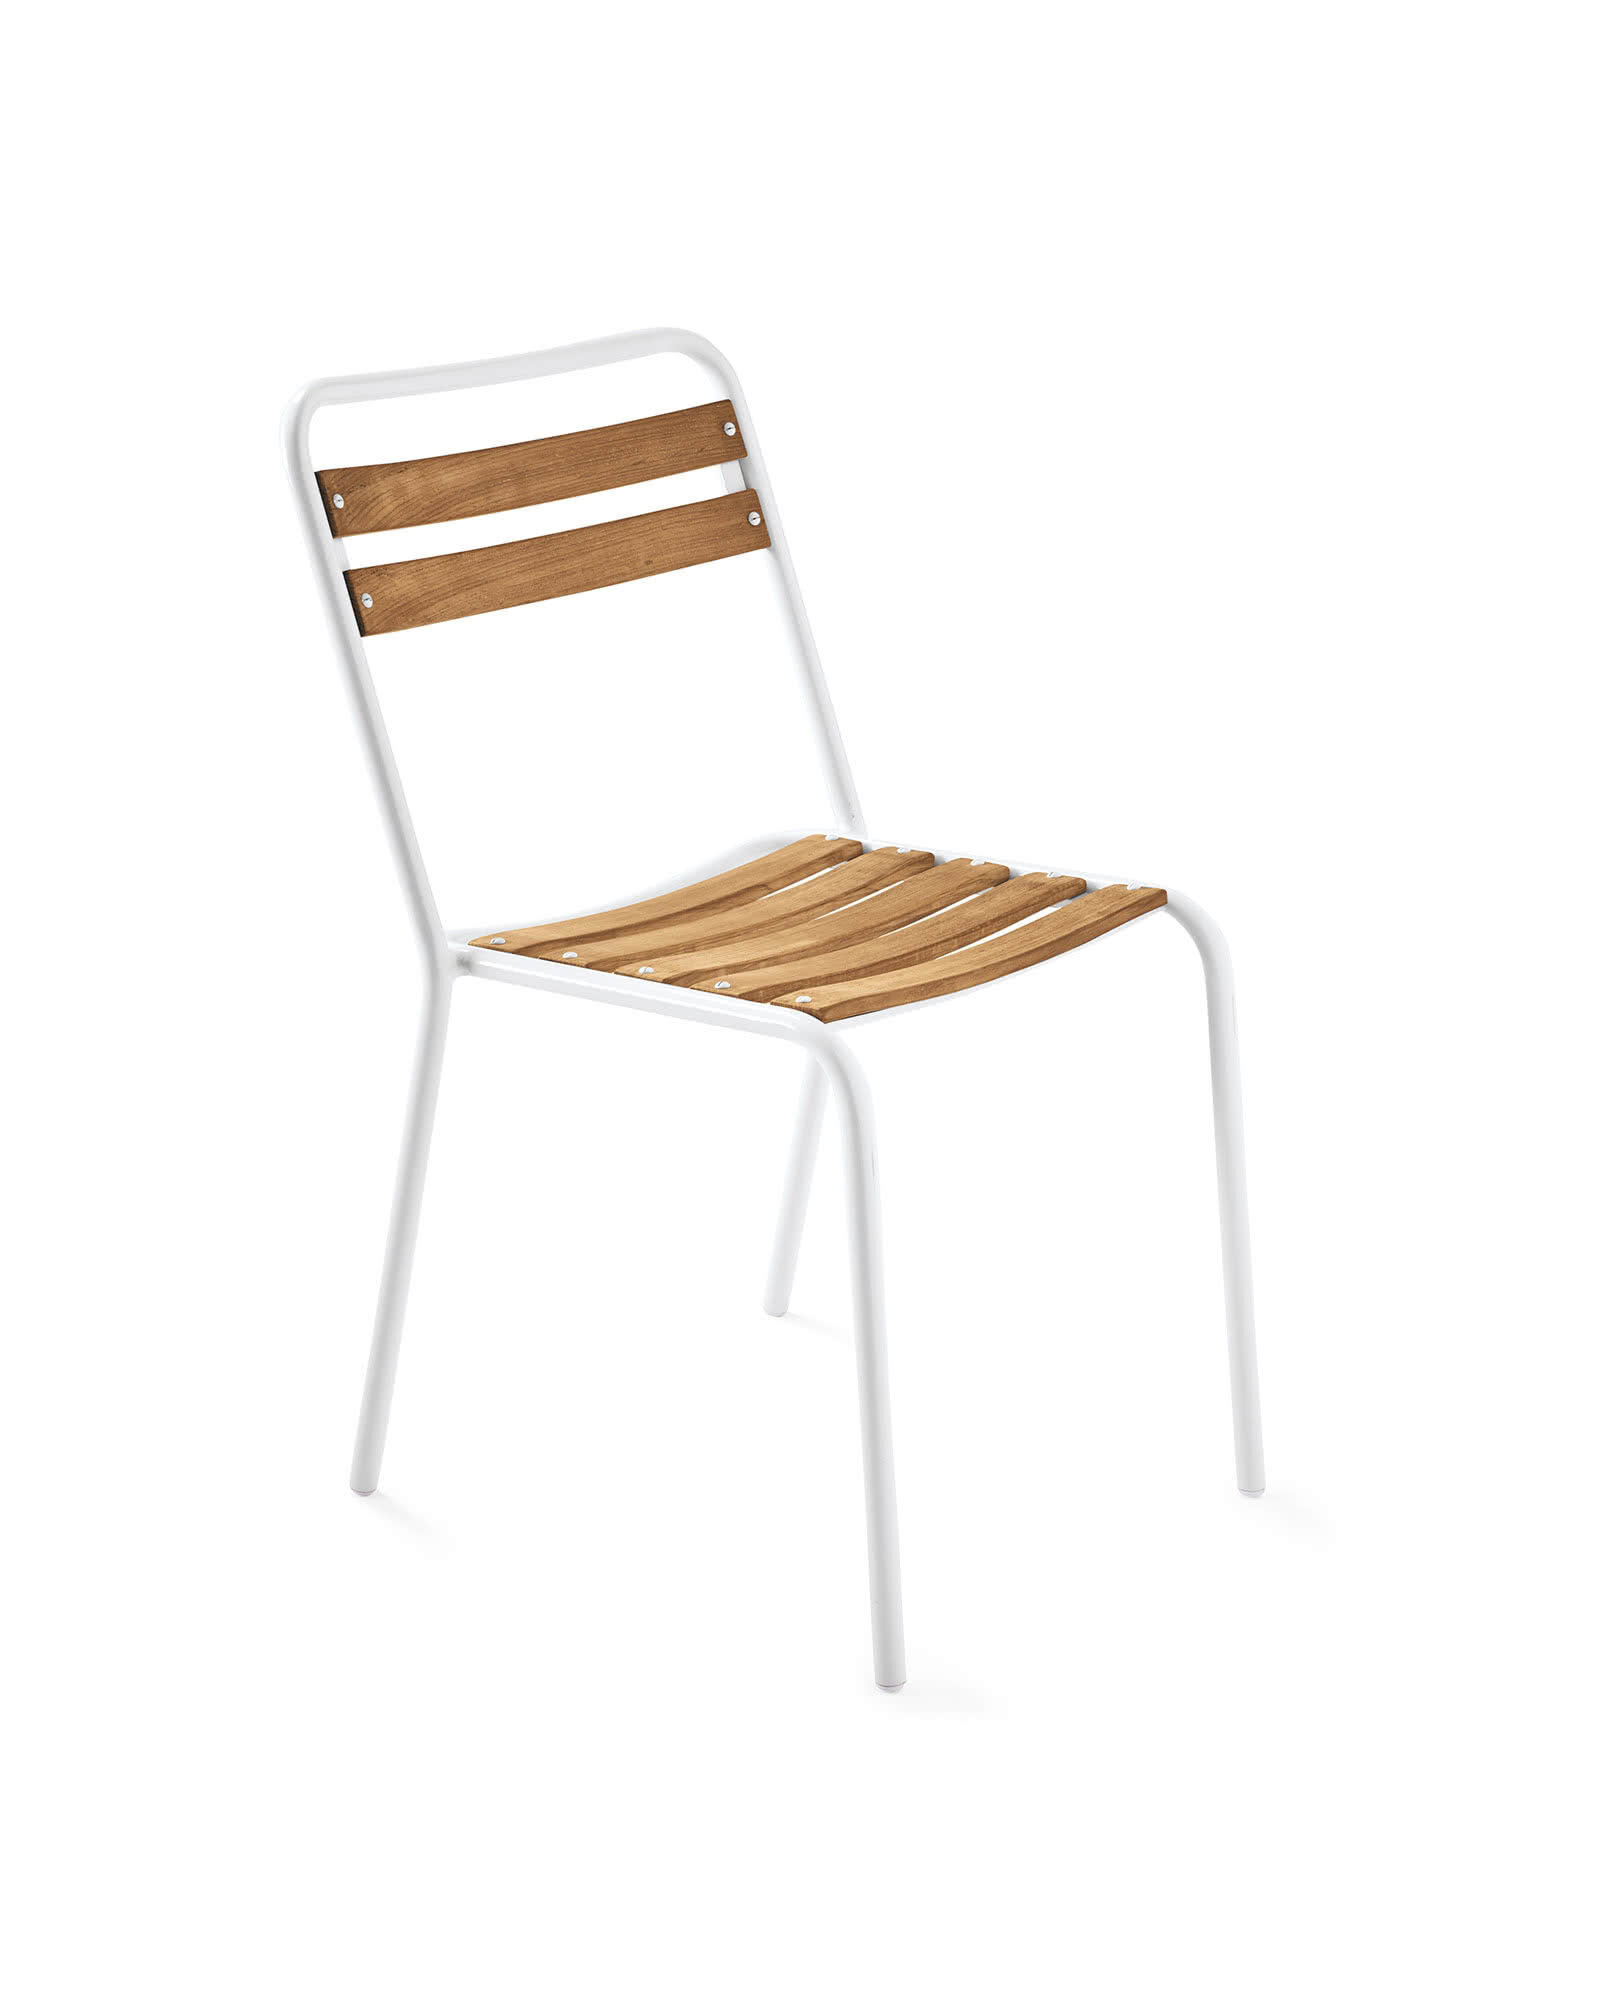 Inverness Outdoor Dining Chair